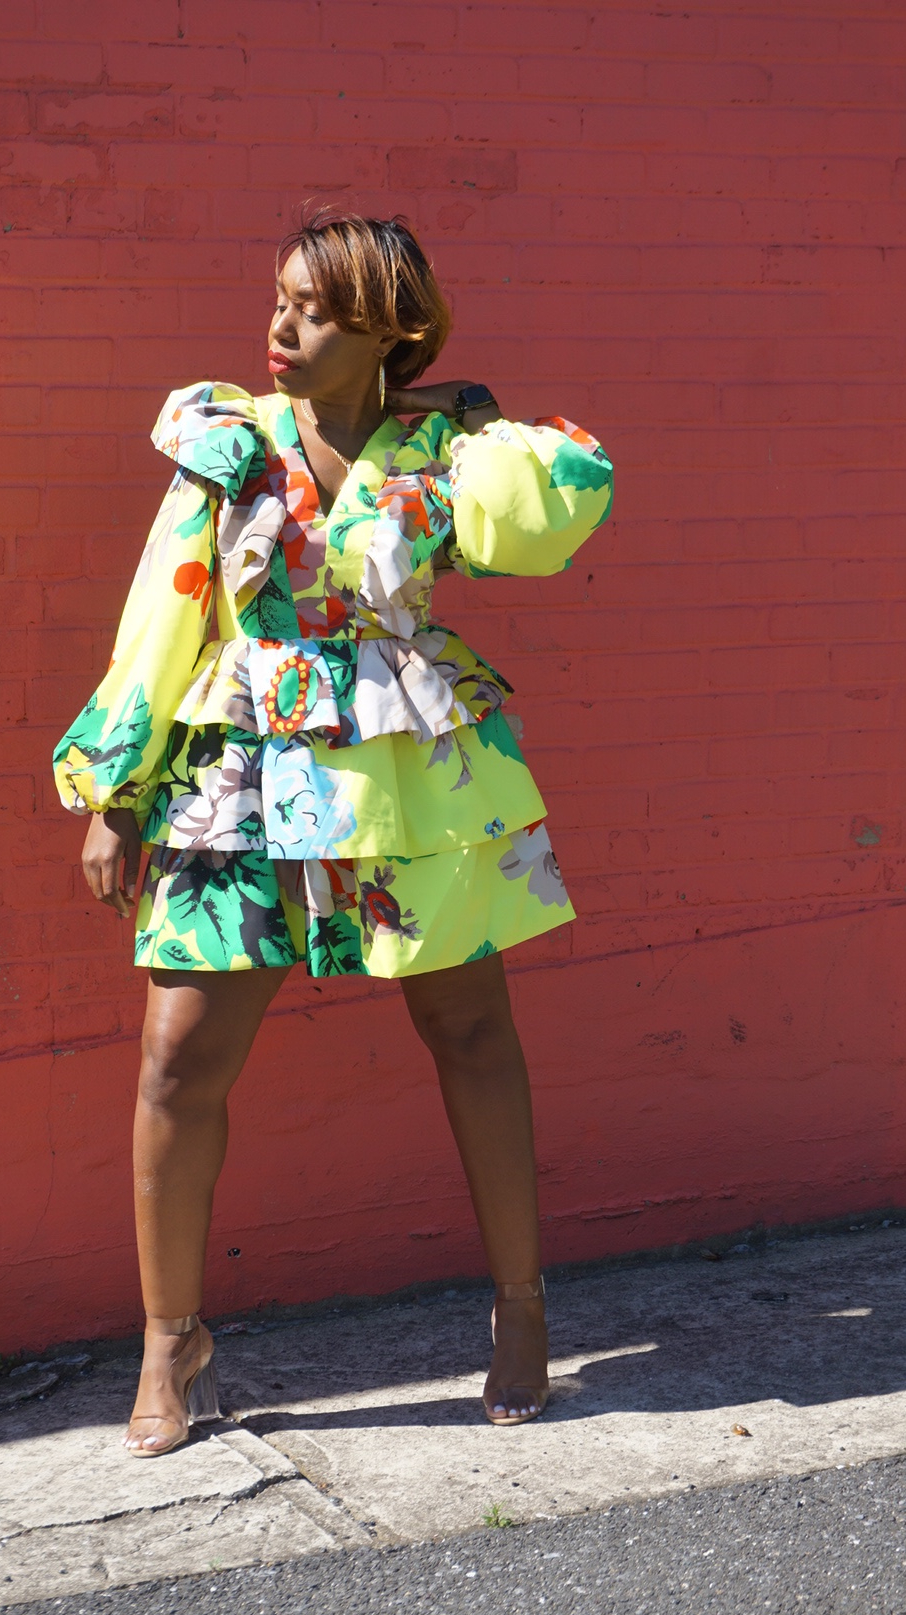 woman posing and wearing colorful dress